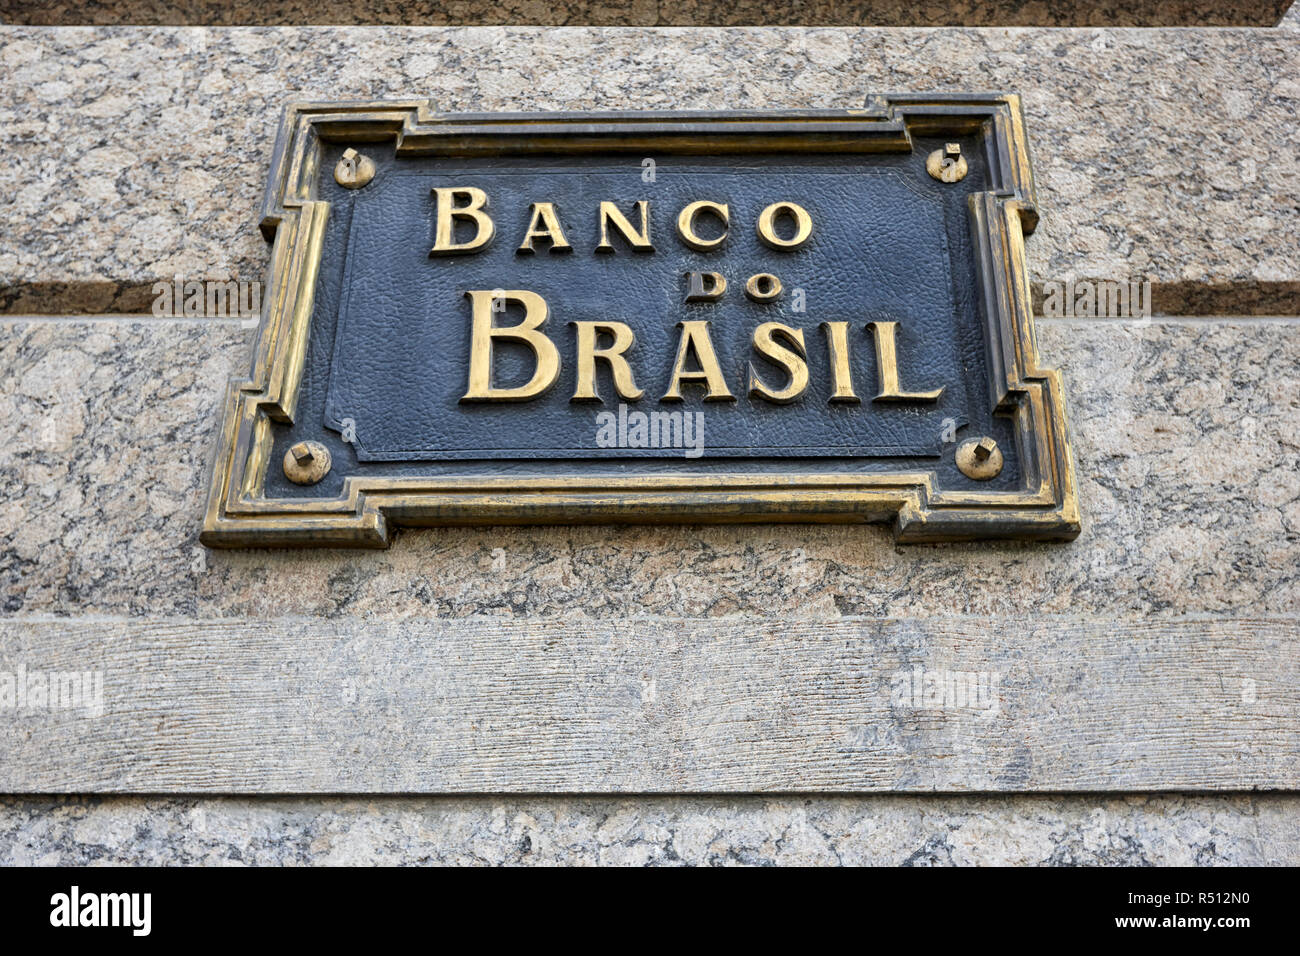 Banco do Brasil bank sign Stock Photo